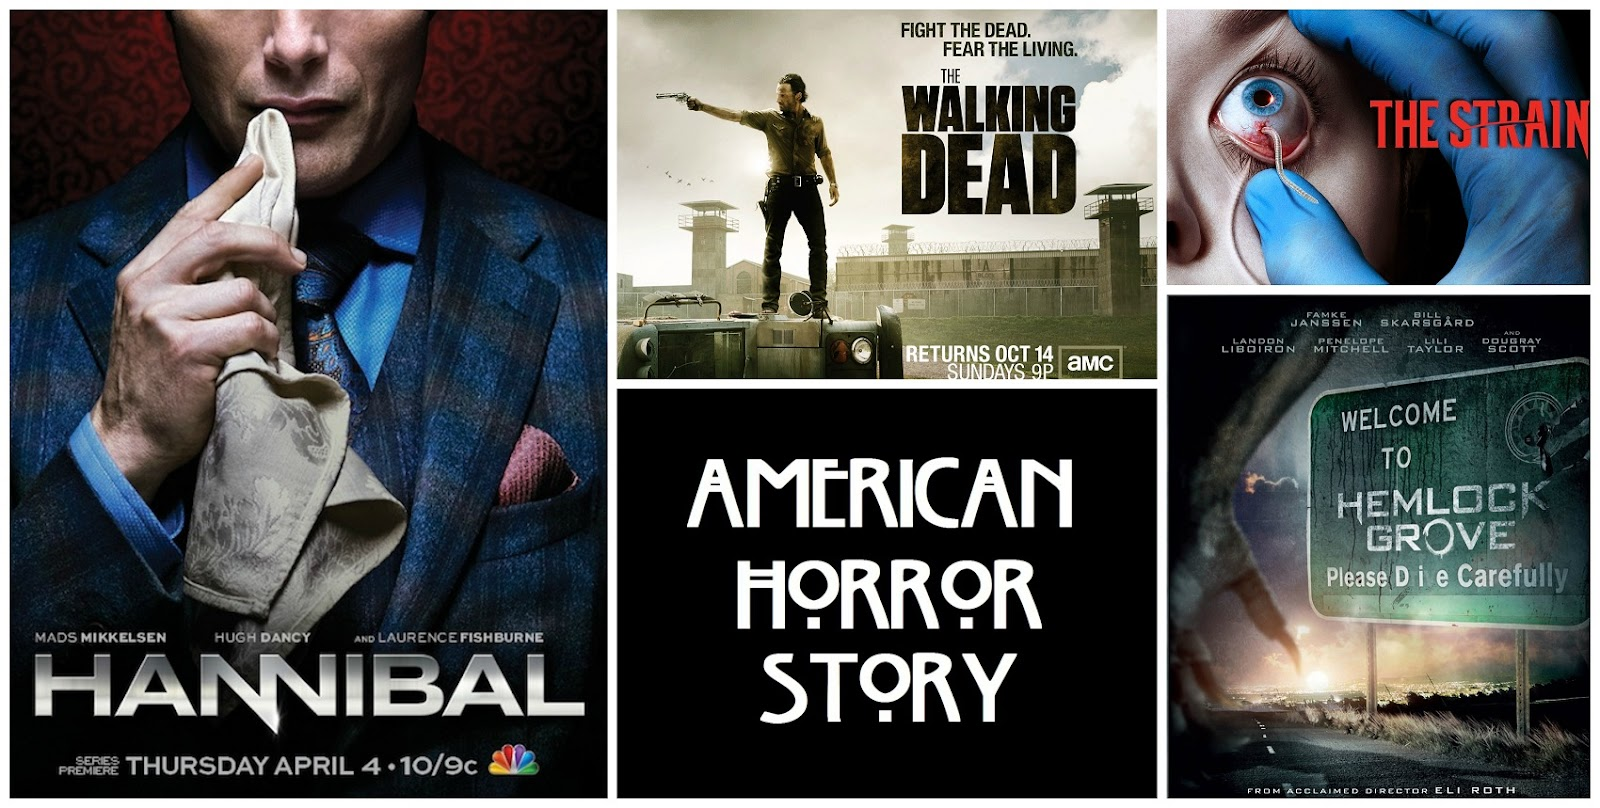 top mejores series de terror hannibal serie the walking dead the strain american horror story hemlock grove opinion argumento miedo thriller